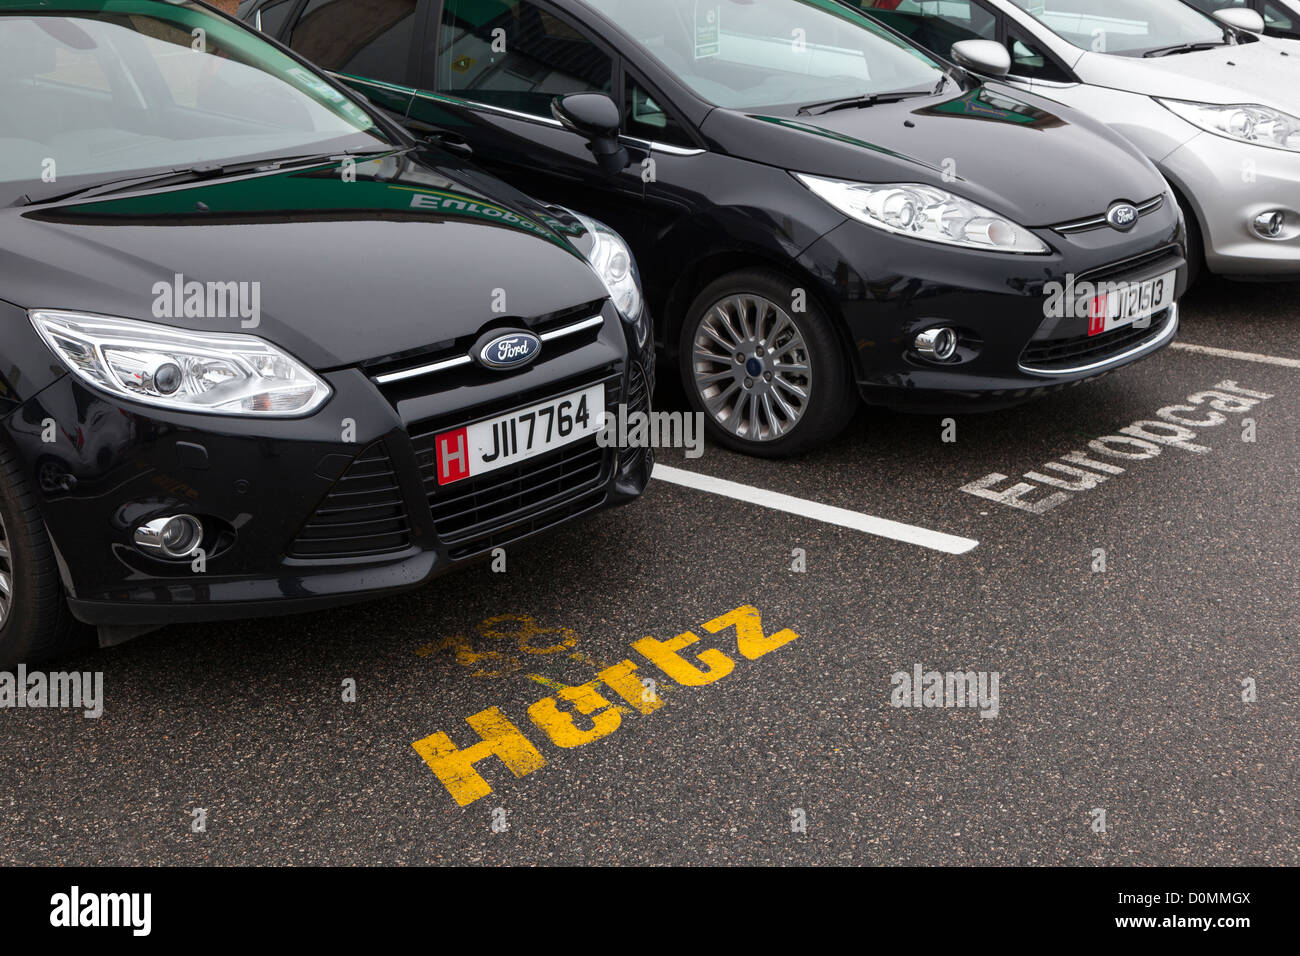 Car Hire Uk Stock Photos Car Hire Uk Stock Images Alamy